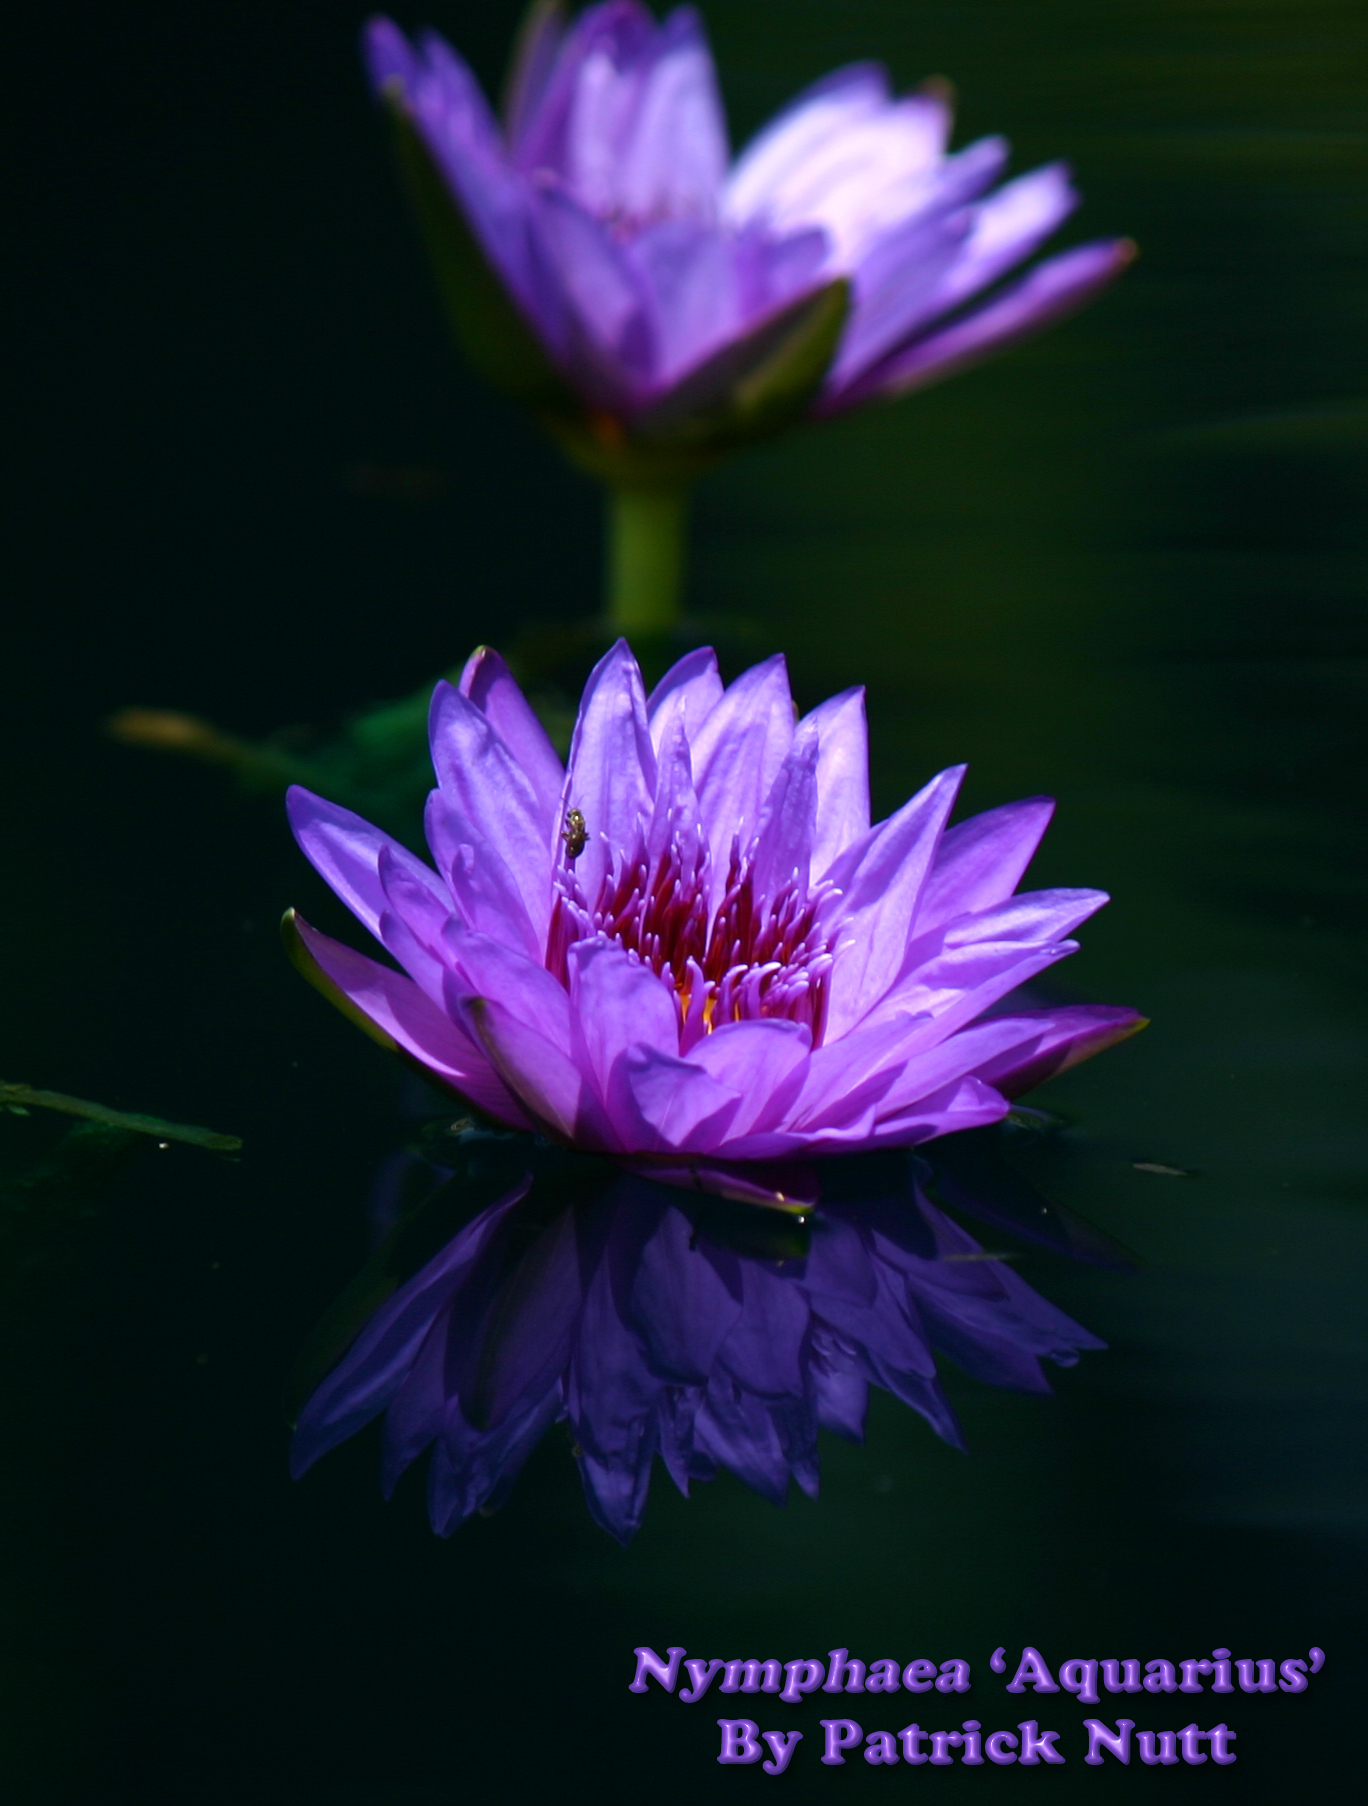 Nymphaea 'Aquarius'